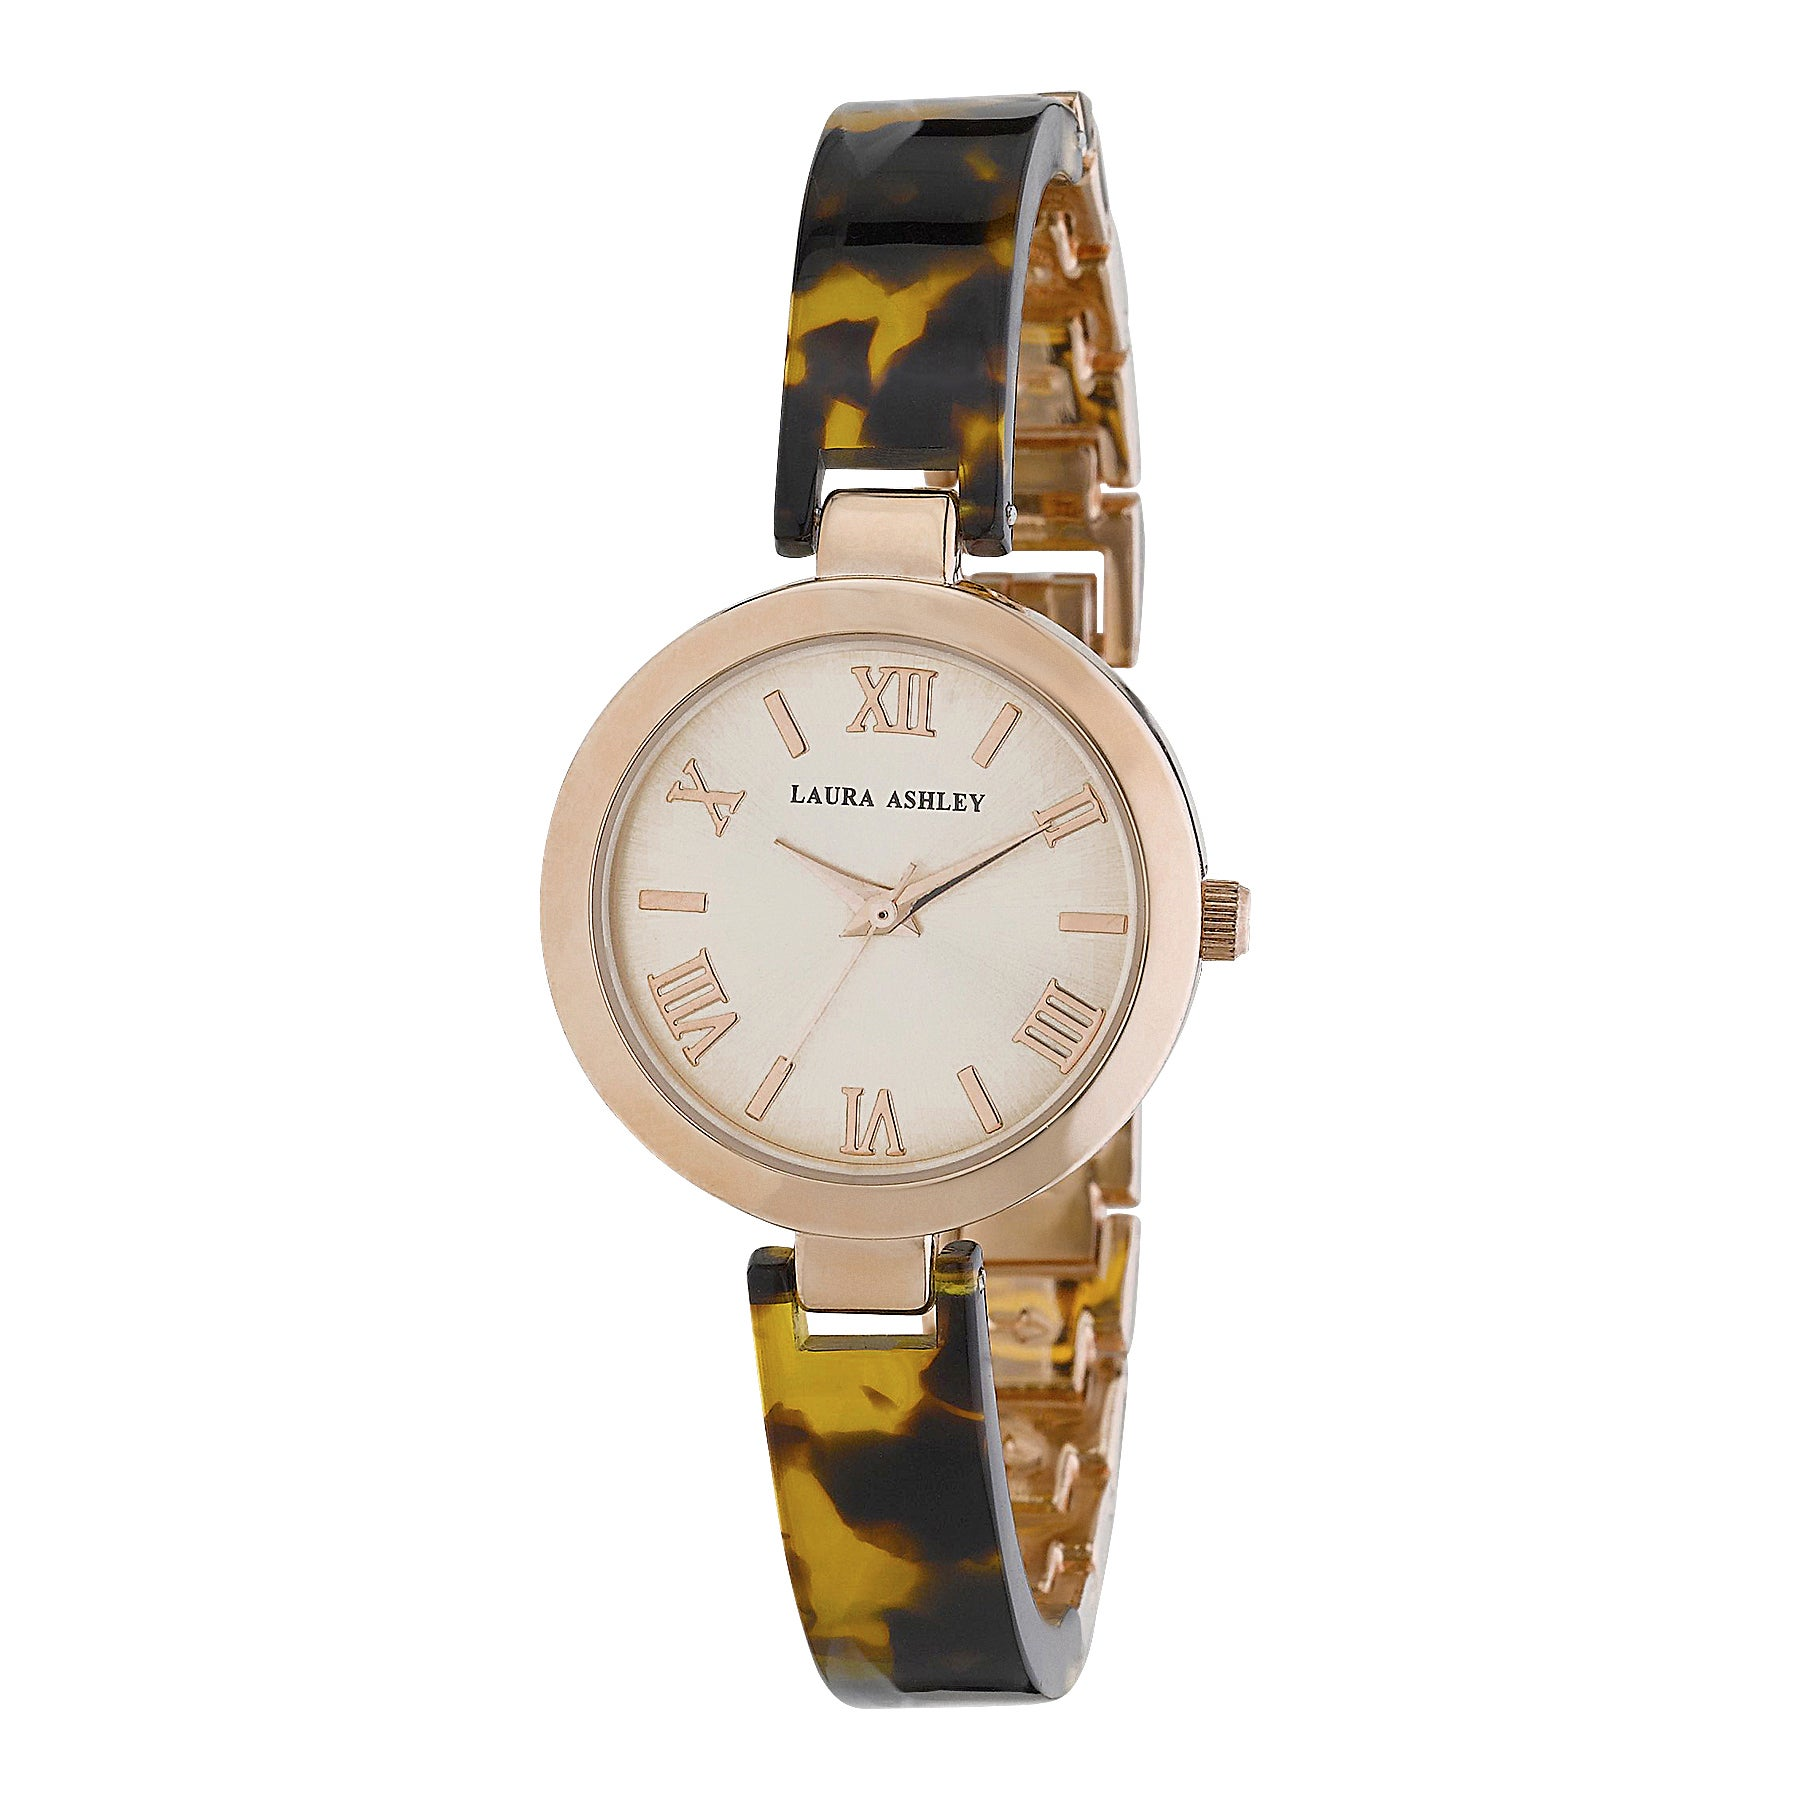 67edba1707a5 Shop Laura Ashley Ladies Tortoise  Rose Gold Resin Link Watch - Free  Shipping Today - Overstock - 10942634